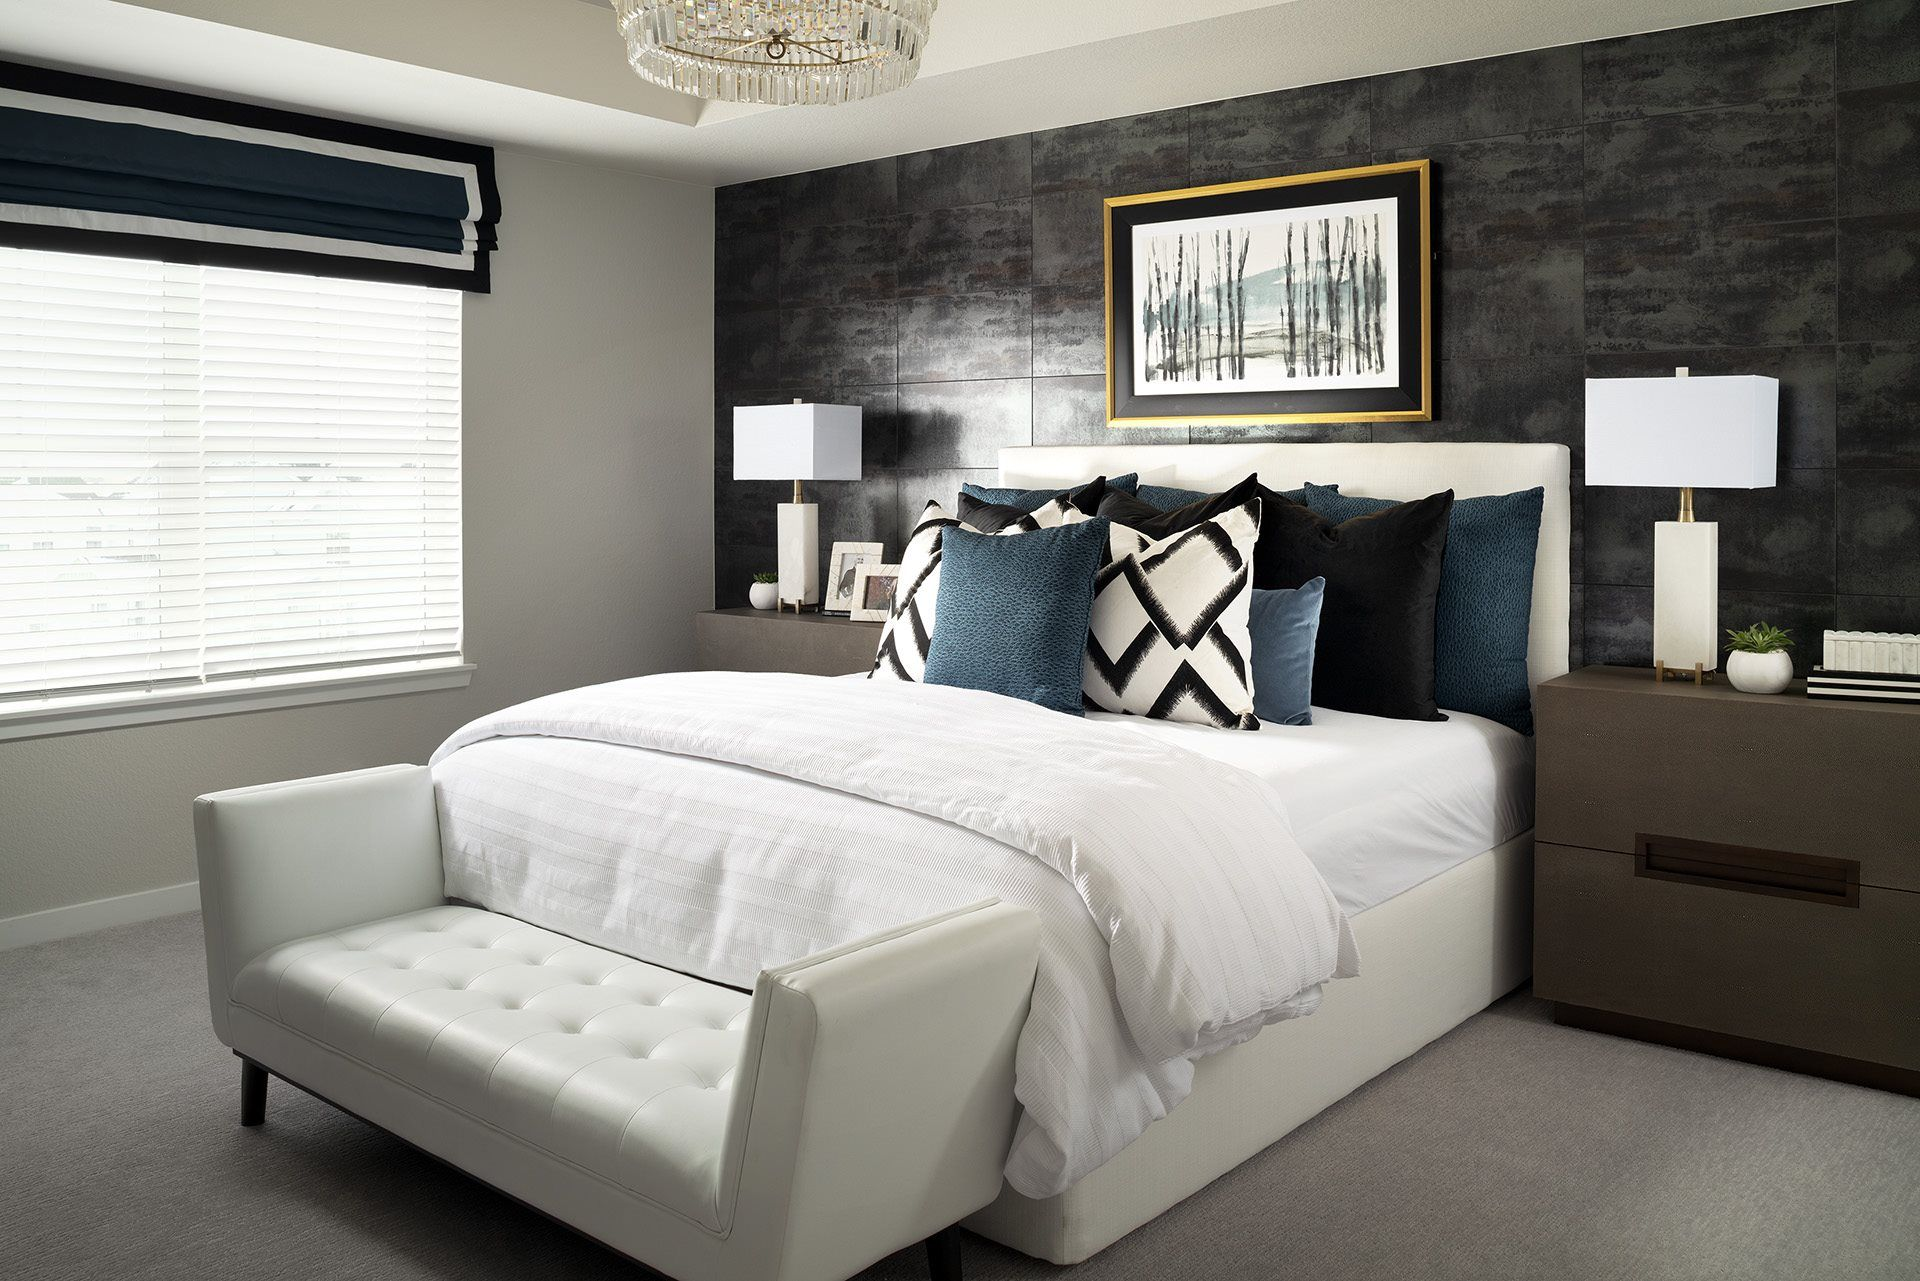 Bedroom featured in the Chelton By Lennar in Denver, CO